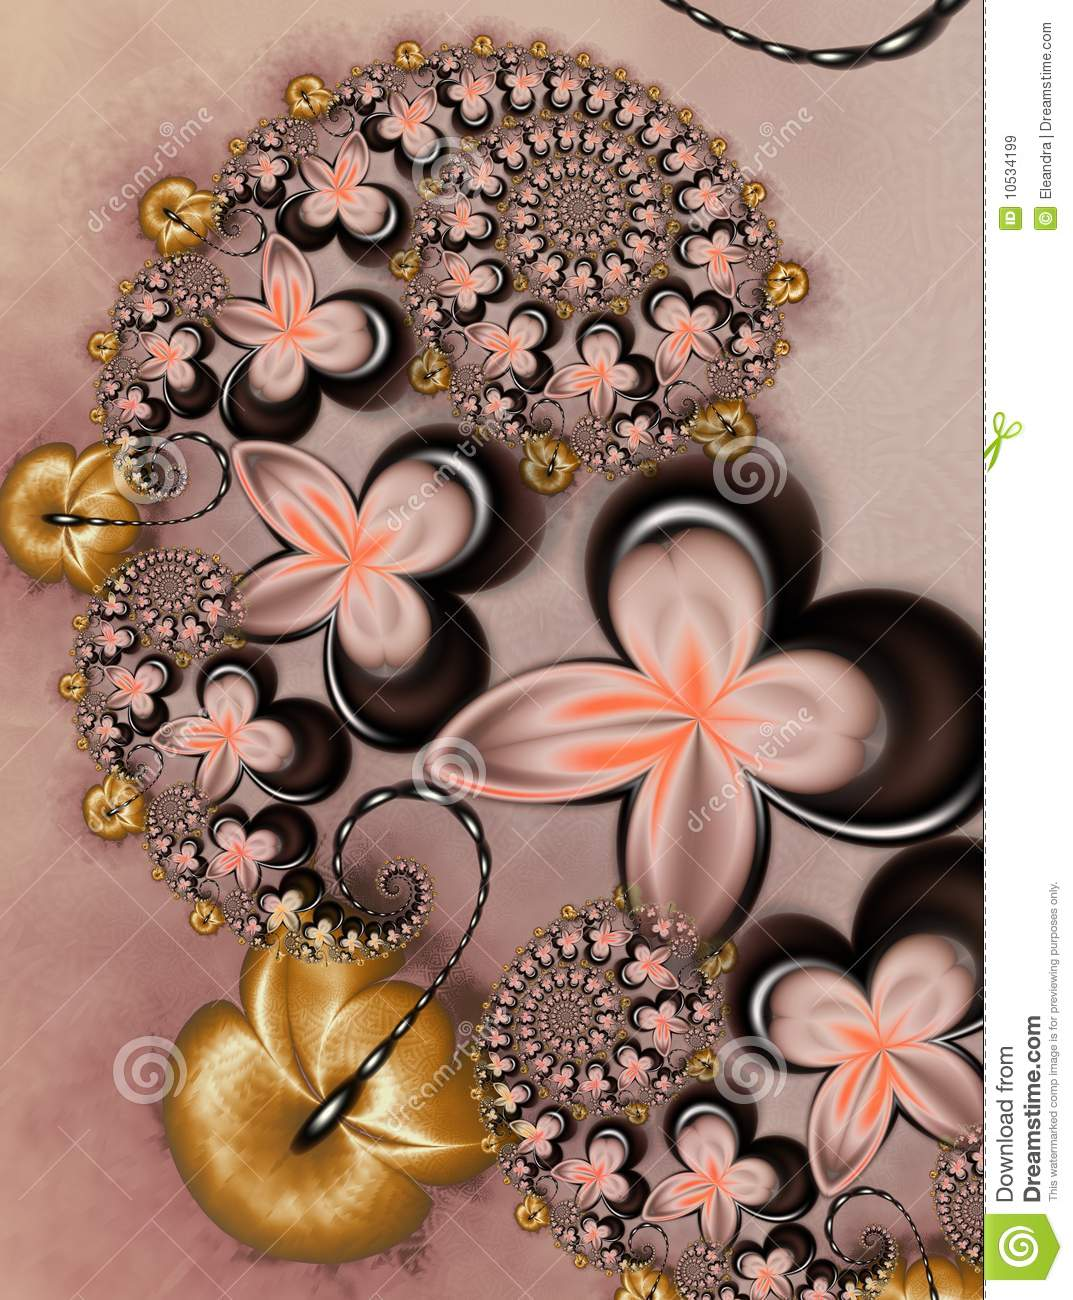 Caramel With Chocolate Flowers Royalty Free Stock Image